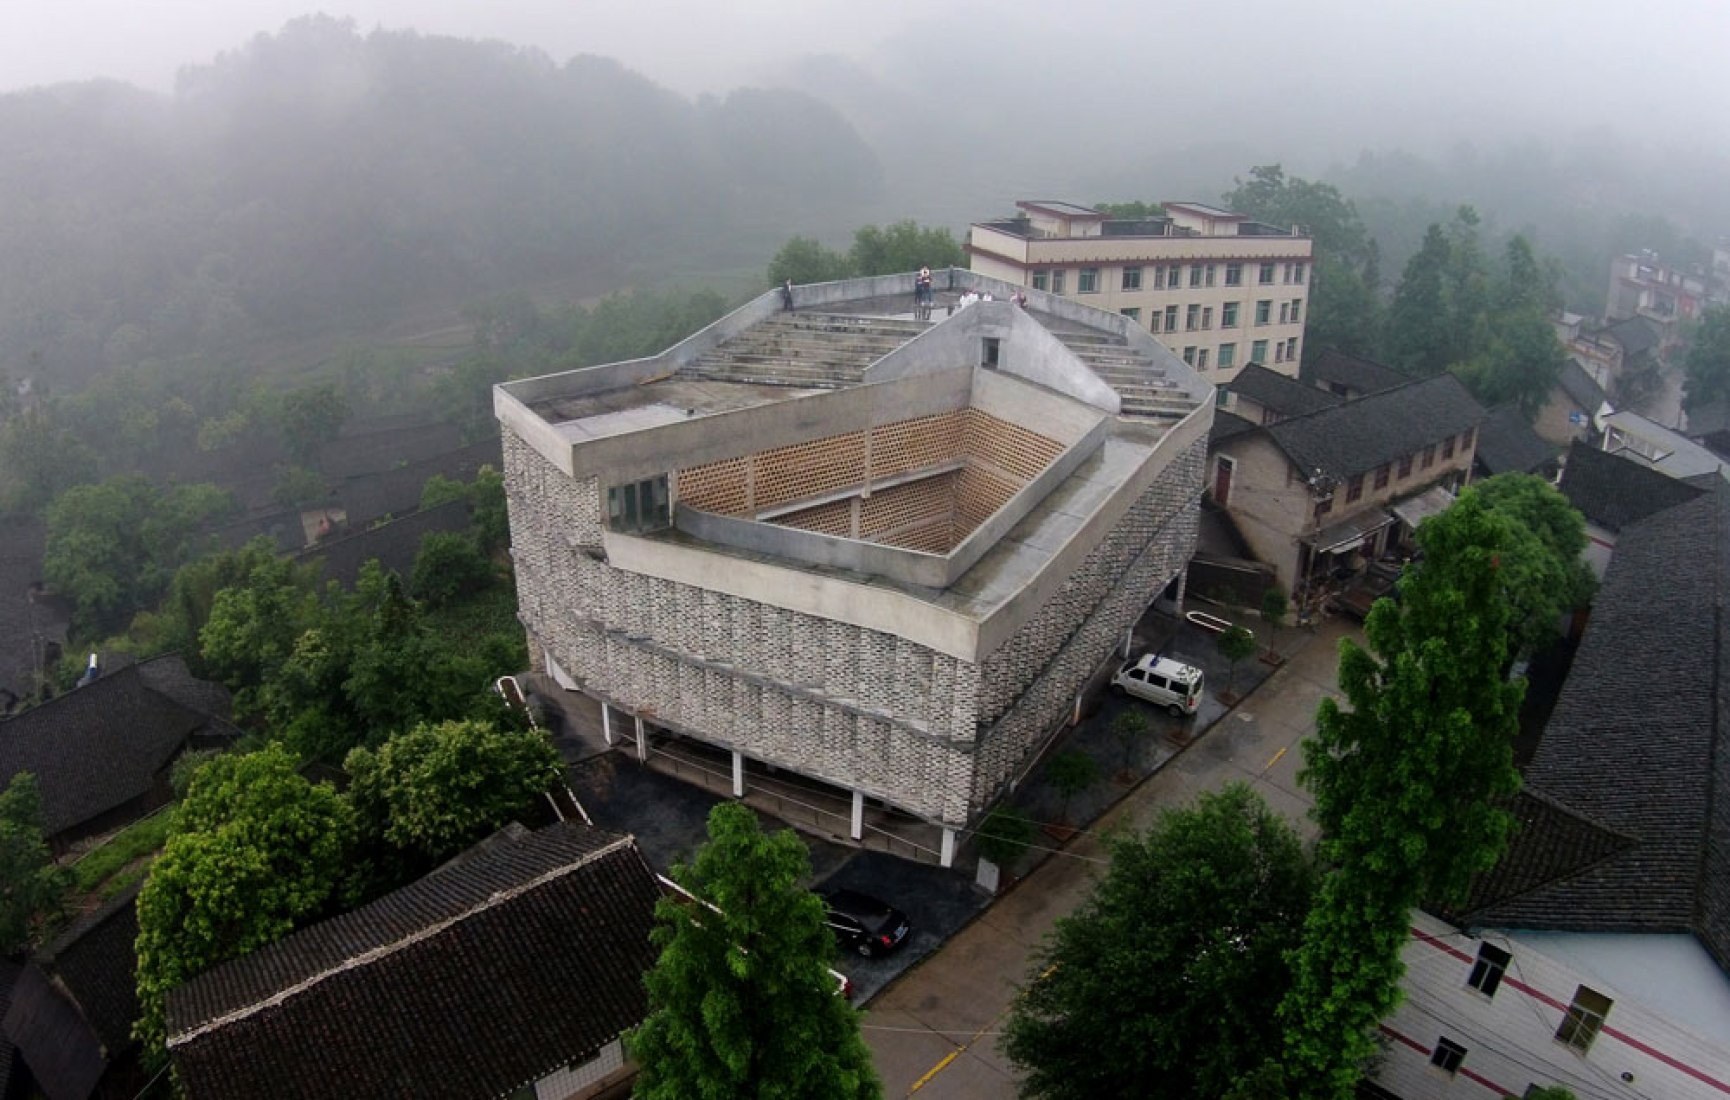 Angdong Health Center Hunan Province by RUF Architects. Photography © Rural Urban Framework (RUF).